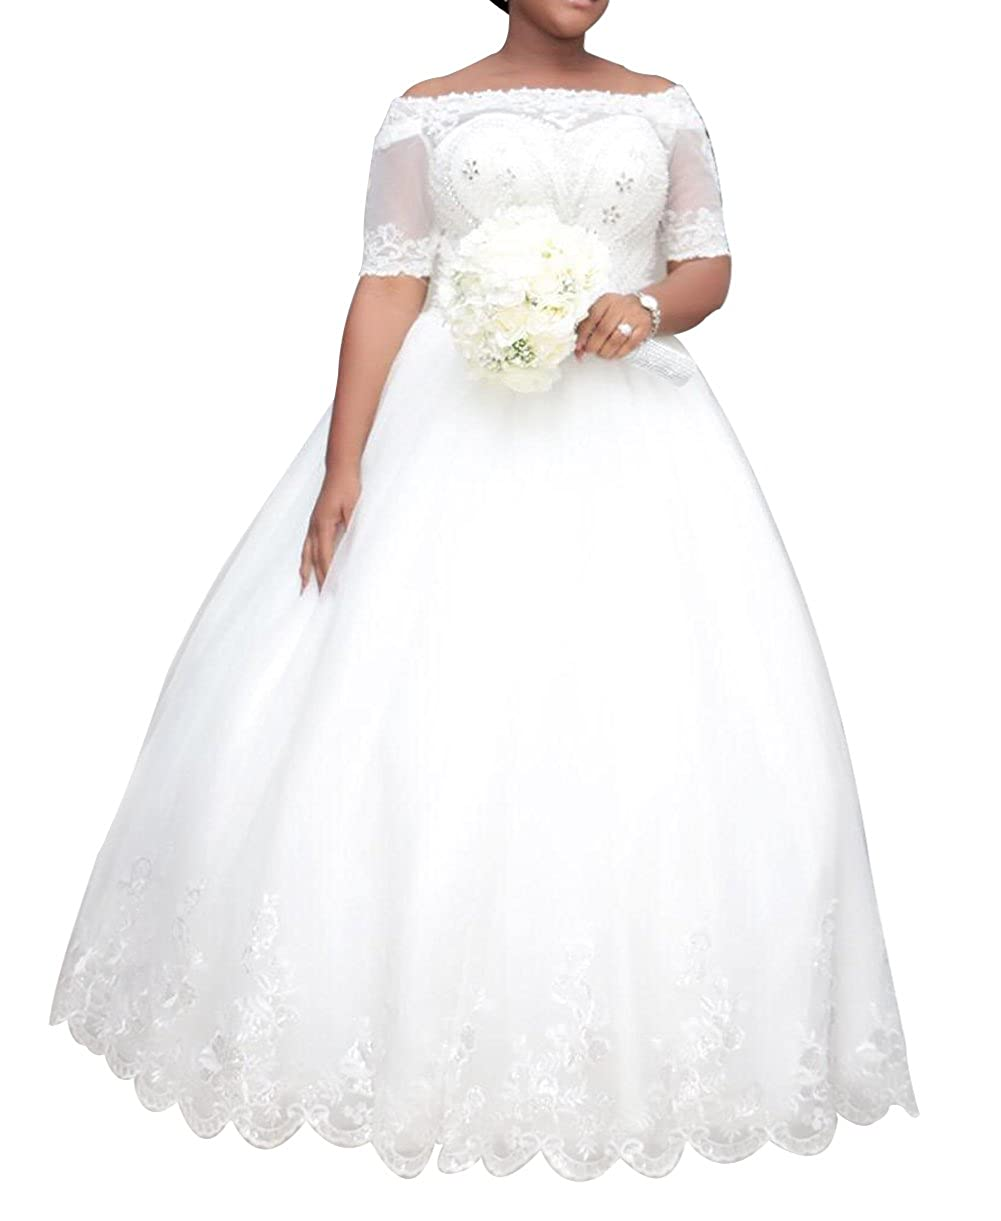 Dreamdress Womens Plus Size Wedding Dresses Half Sleeve Lace Bridal